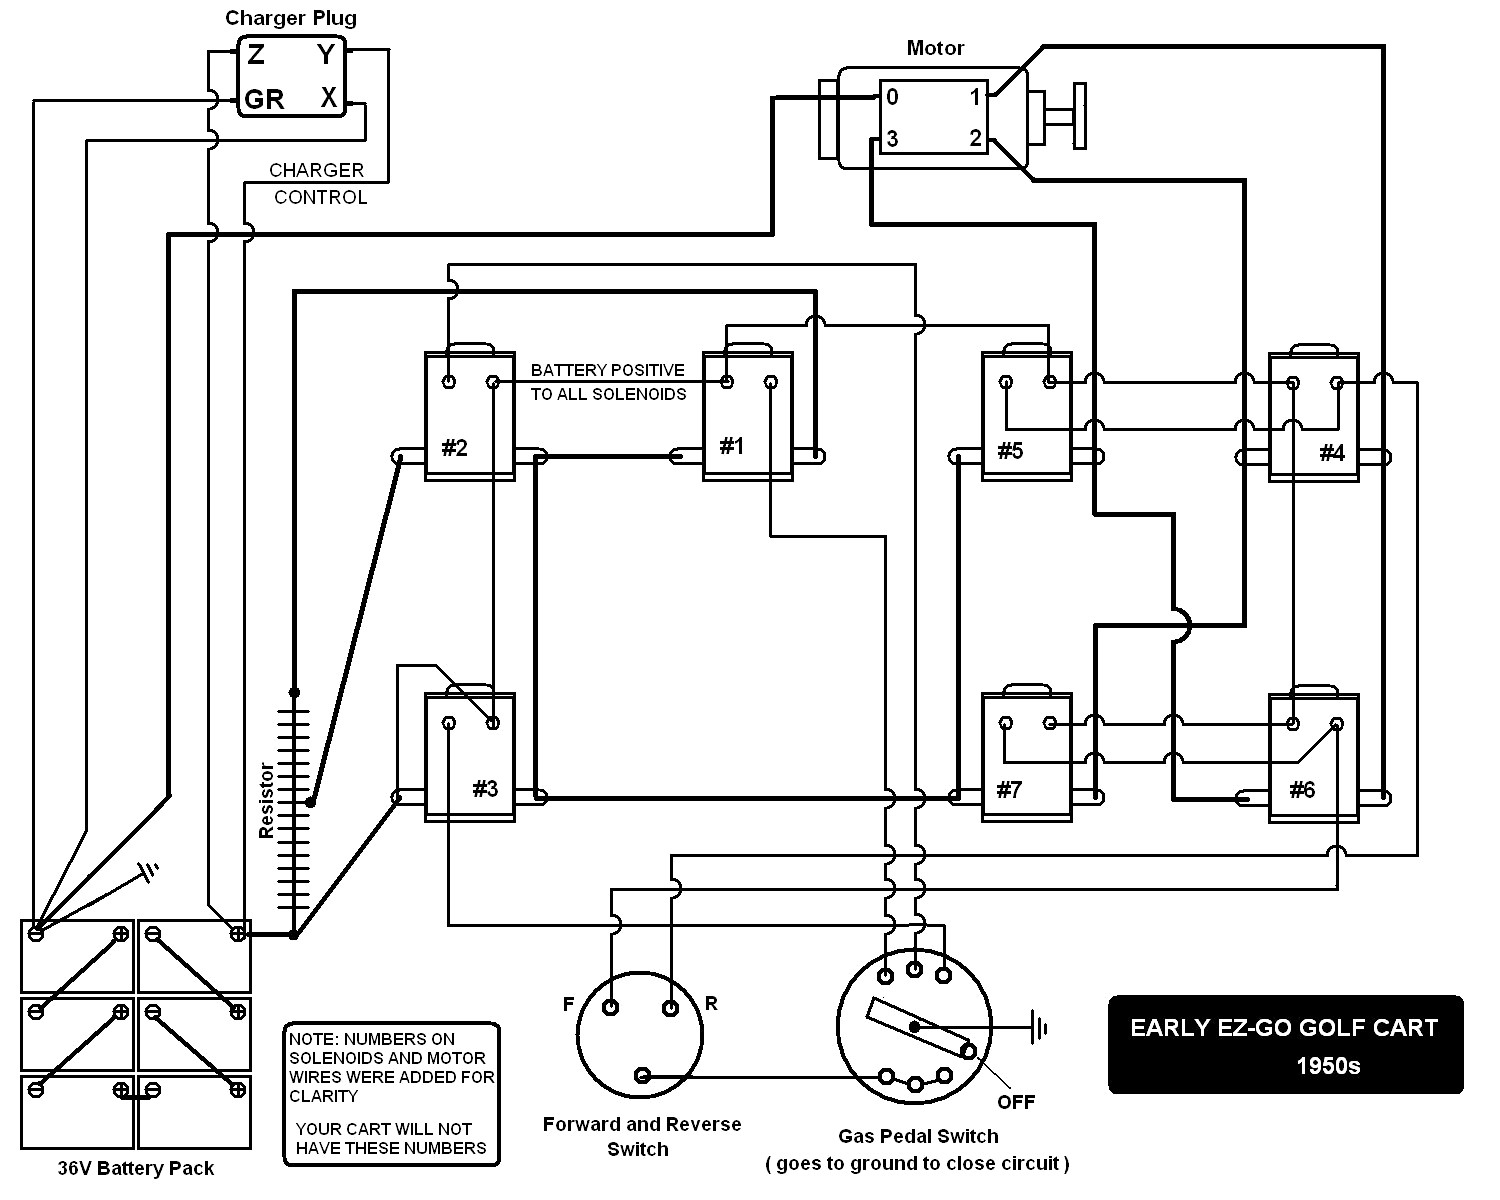 hight resolution of e z go wiring diagram just another wiring data ez go wiring schematic 1979 ez go wiring